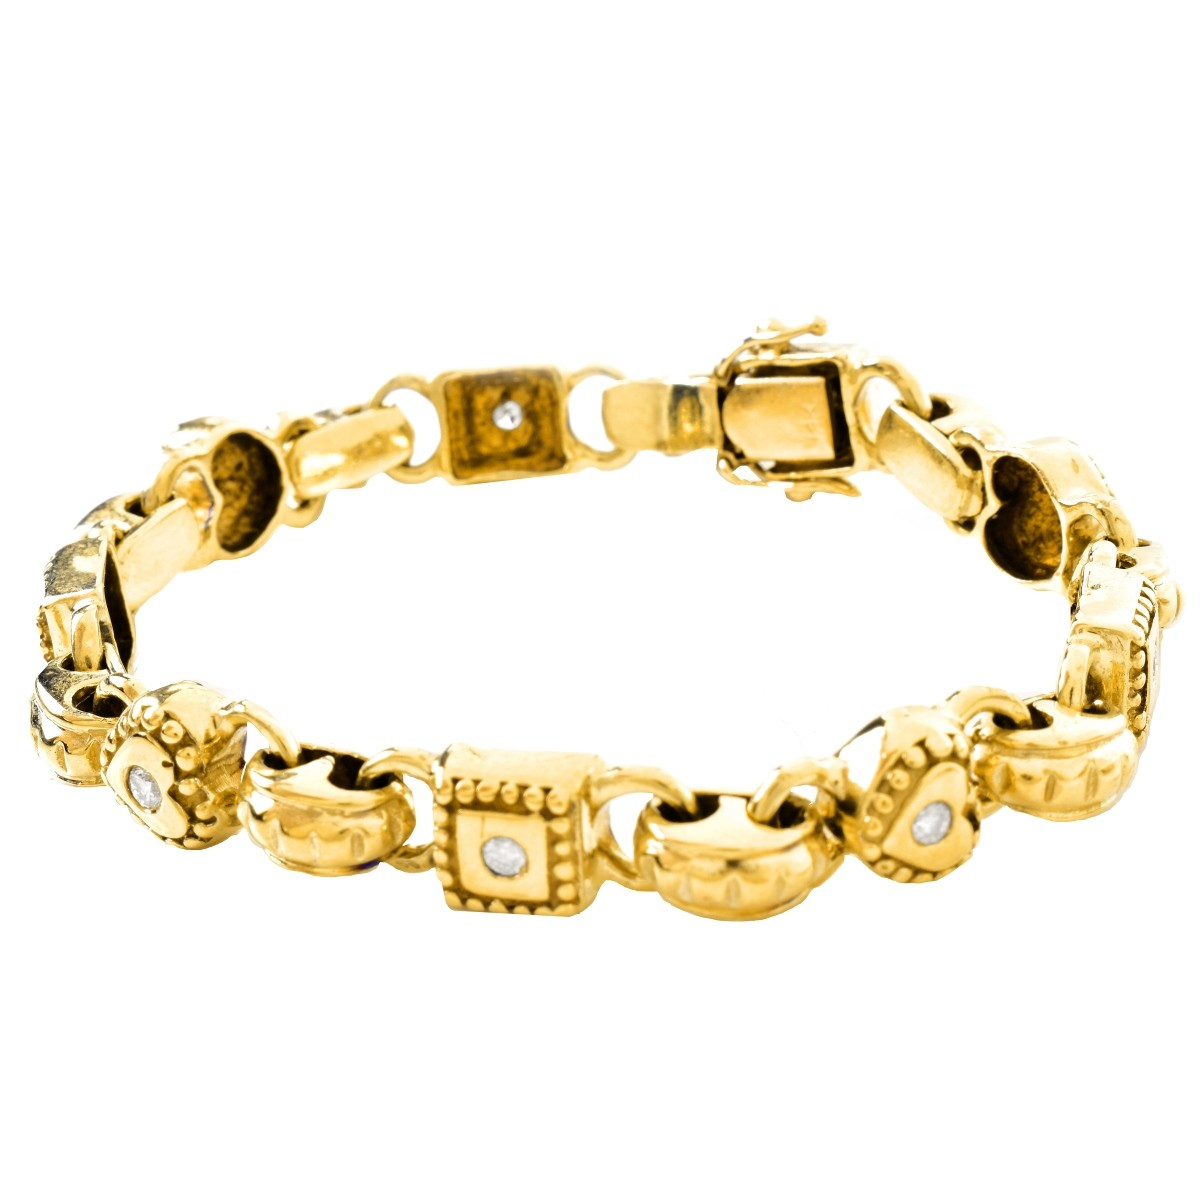 Vintage .75ct TW Diamond and 14K Gold Bracelet